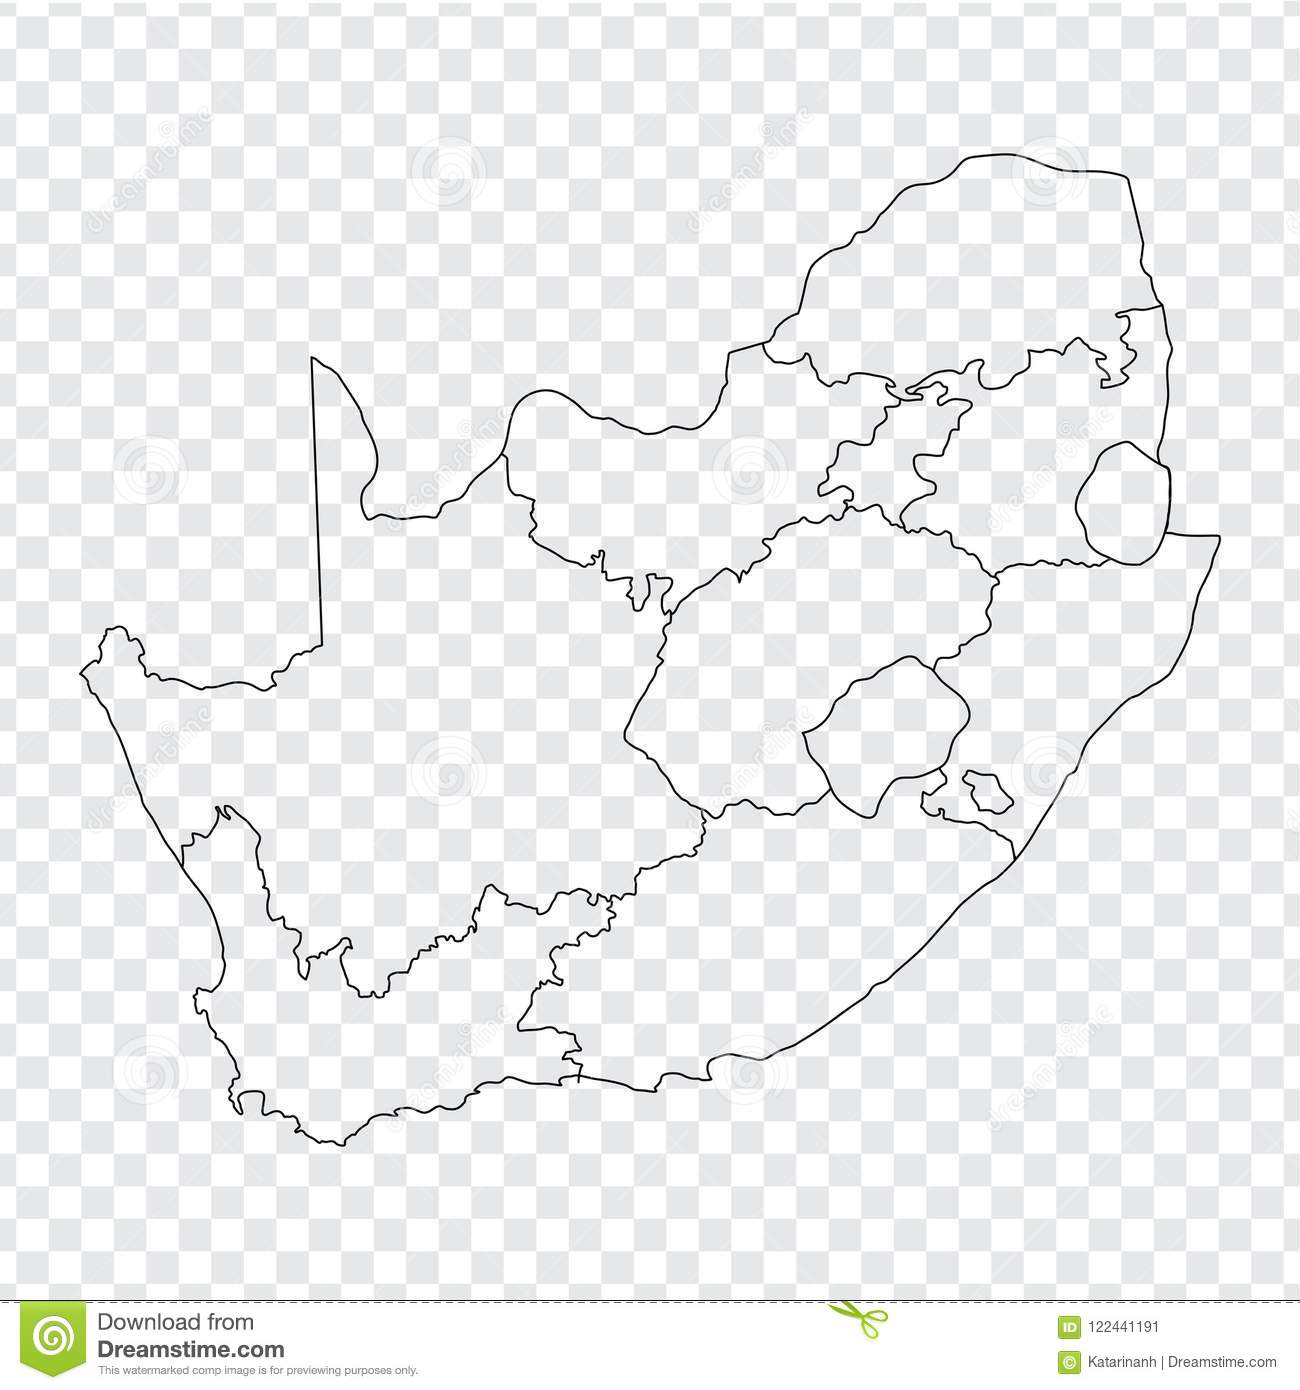 Picture of: Blank Map South Africa High Quality Map 907619 Png Images Pngio